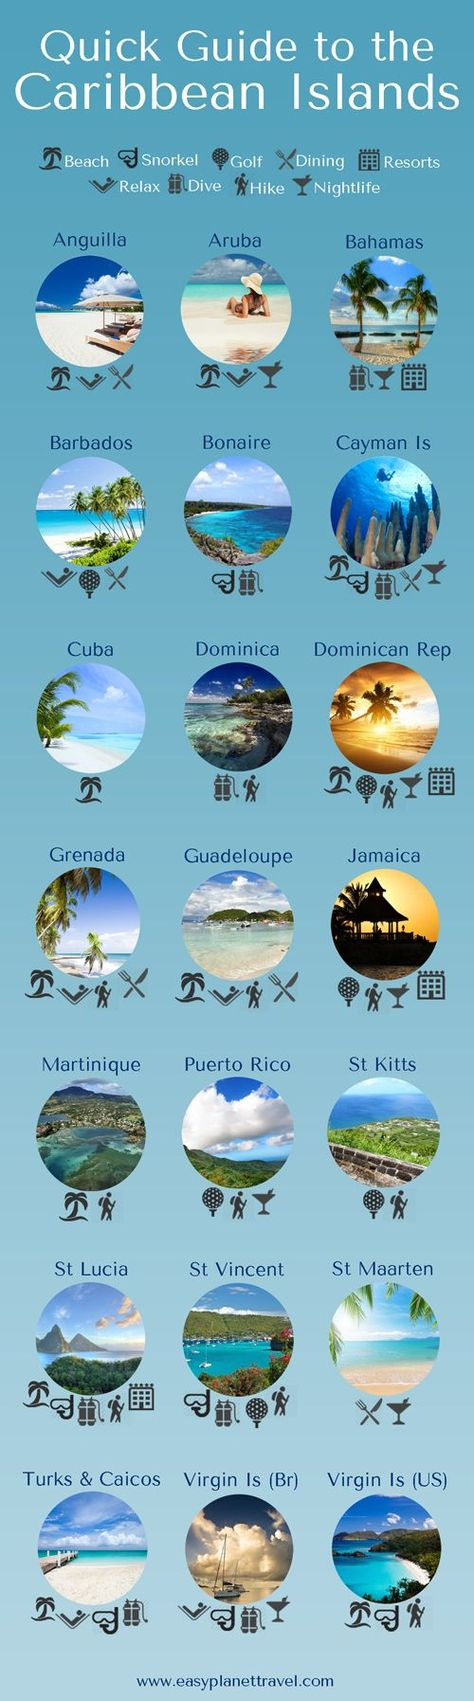 So many islands to choose from! These guides will help make a good decision:  http://beachblissliving.com/short-guide-to-caribbean-islands/